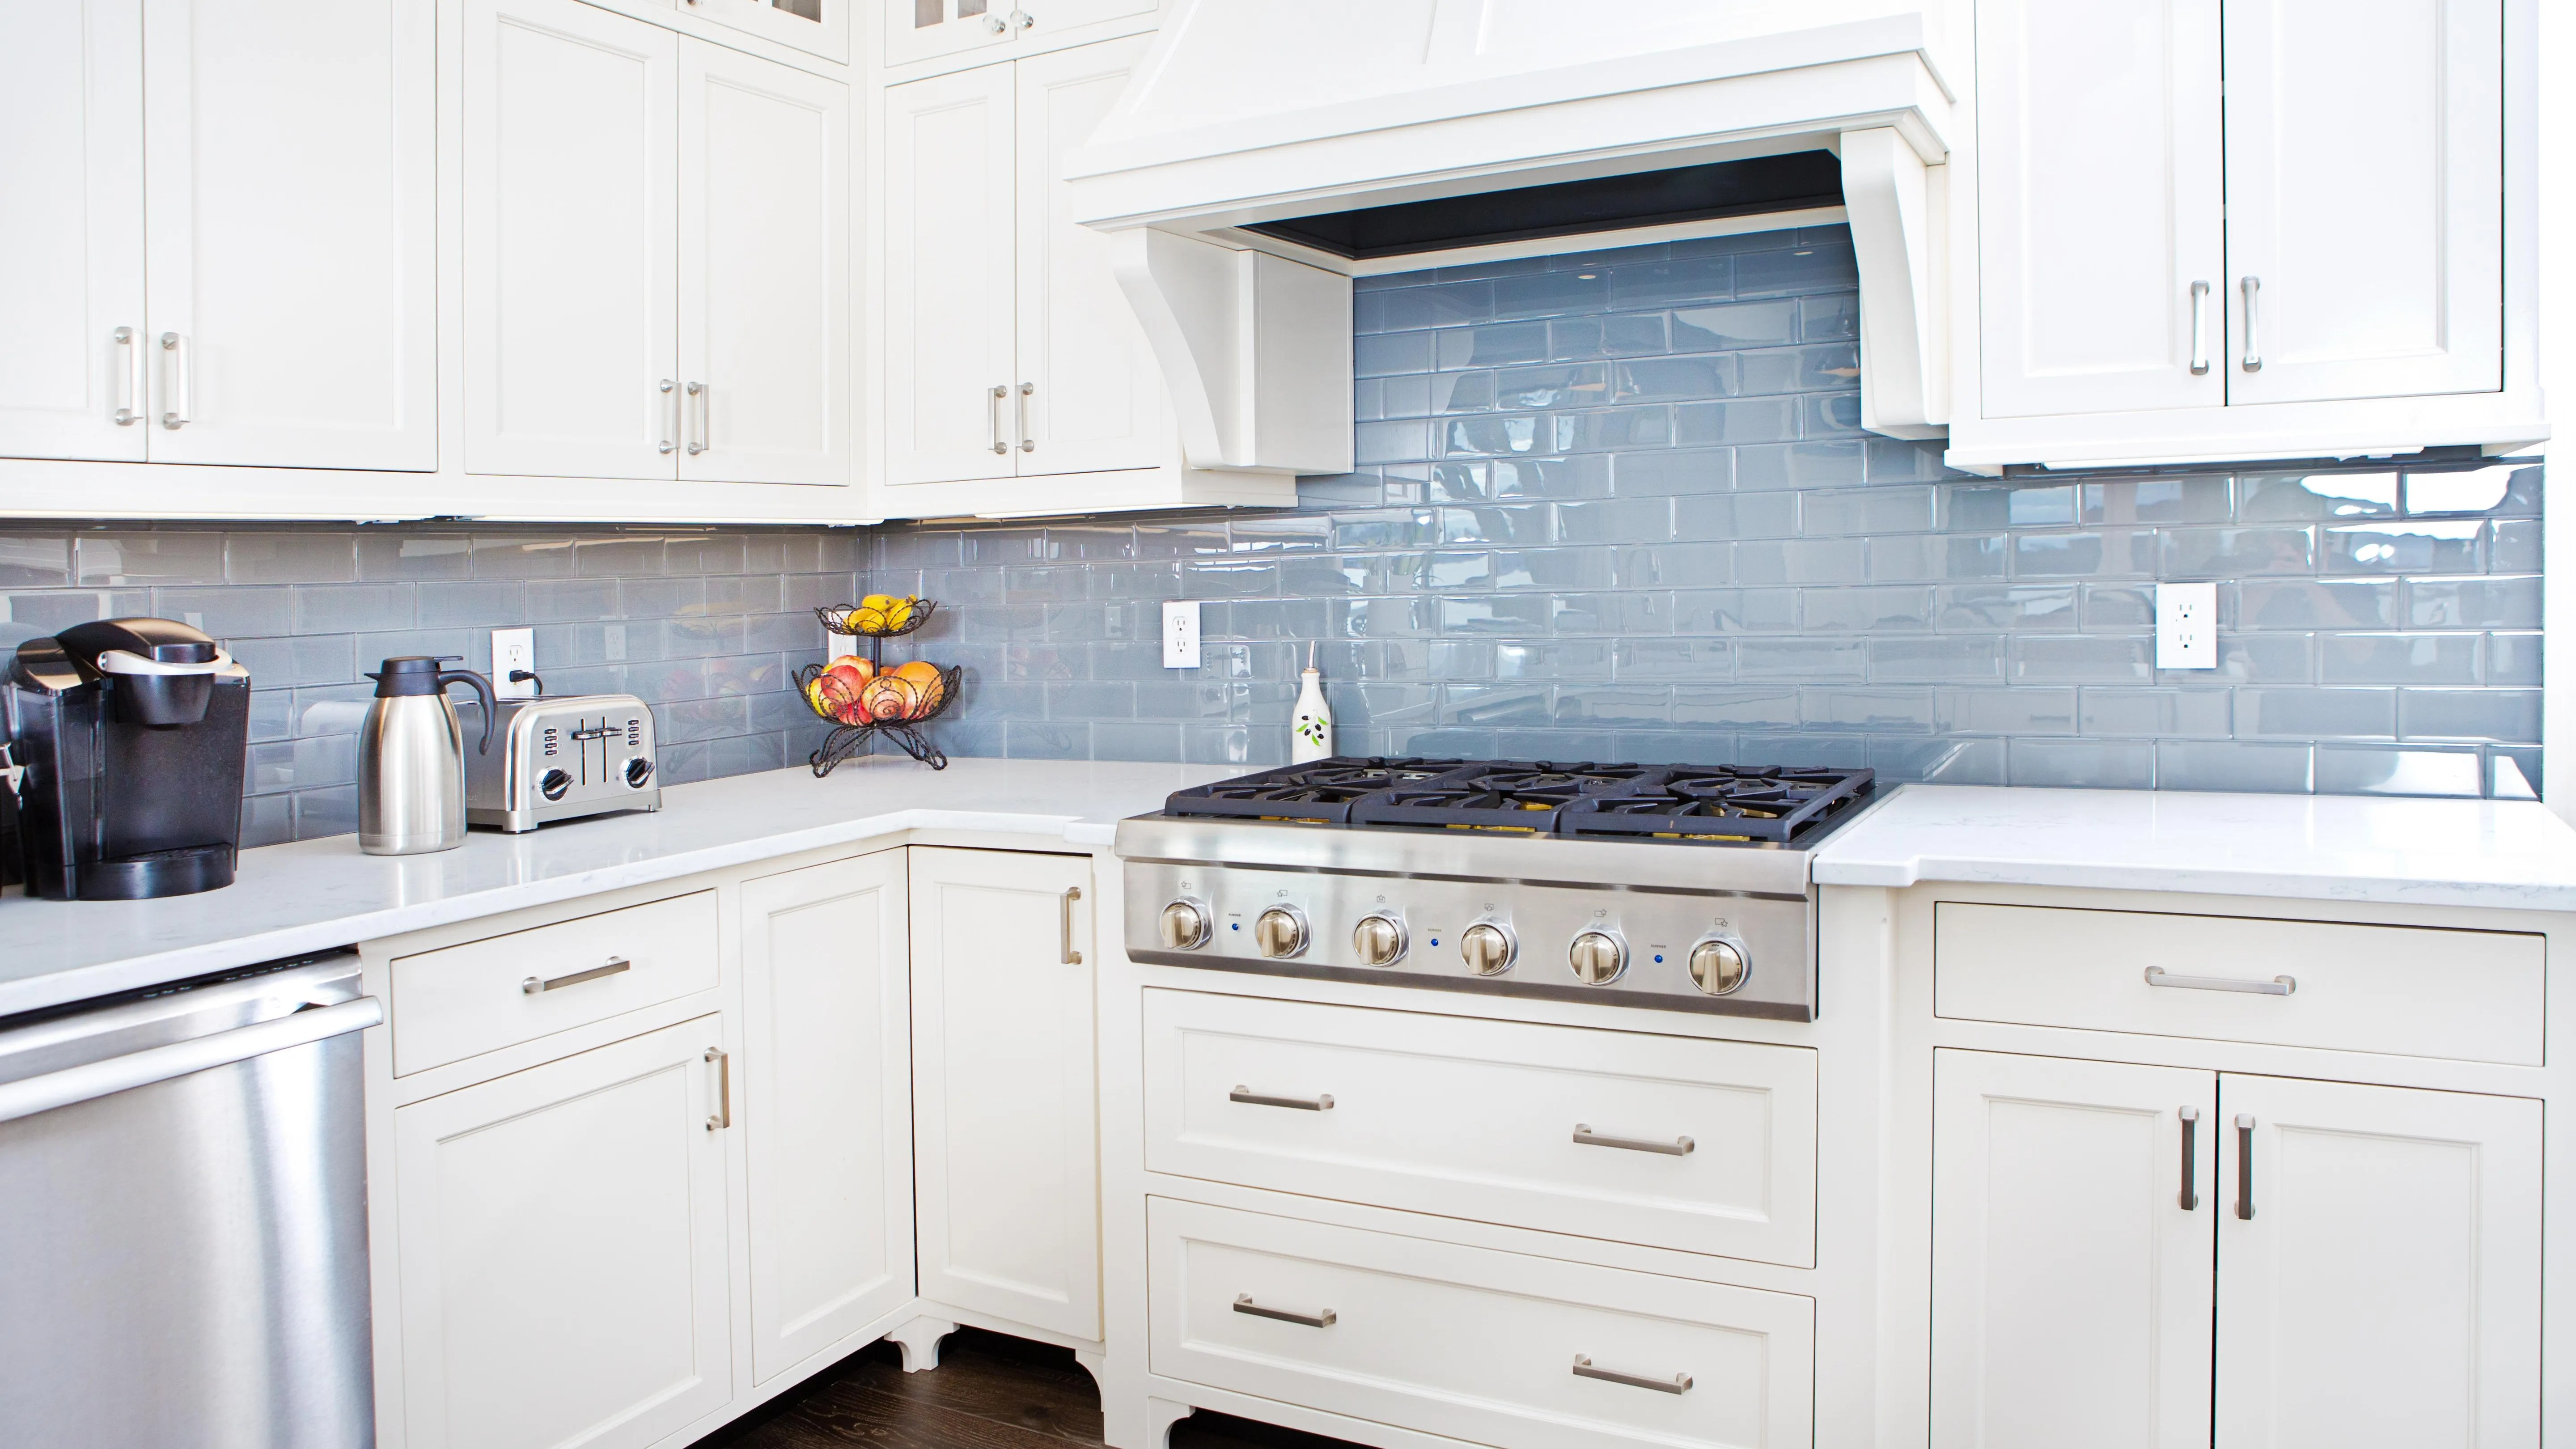 buy old kitchen cabinets home depot undermount sink how to revive on a budget